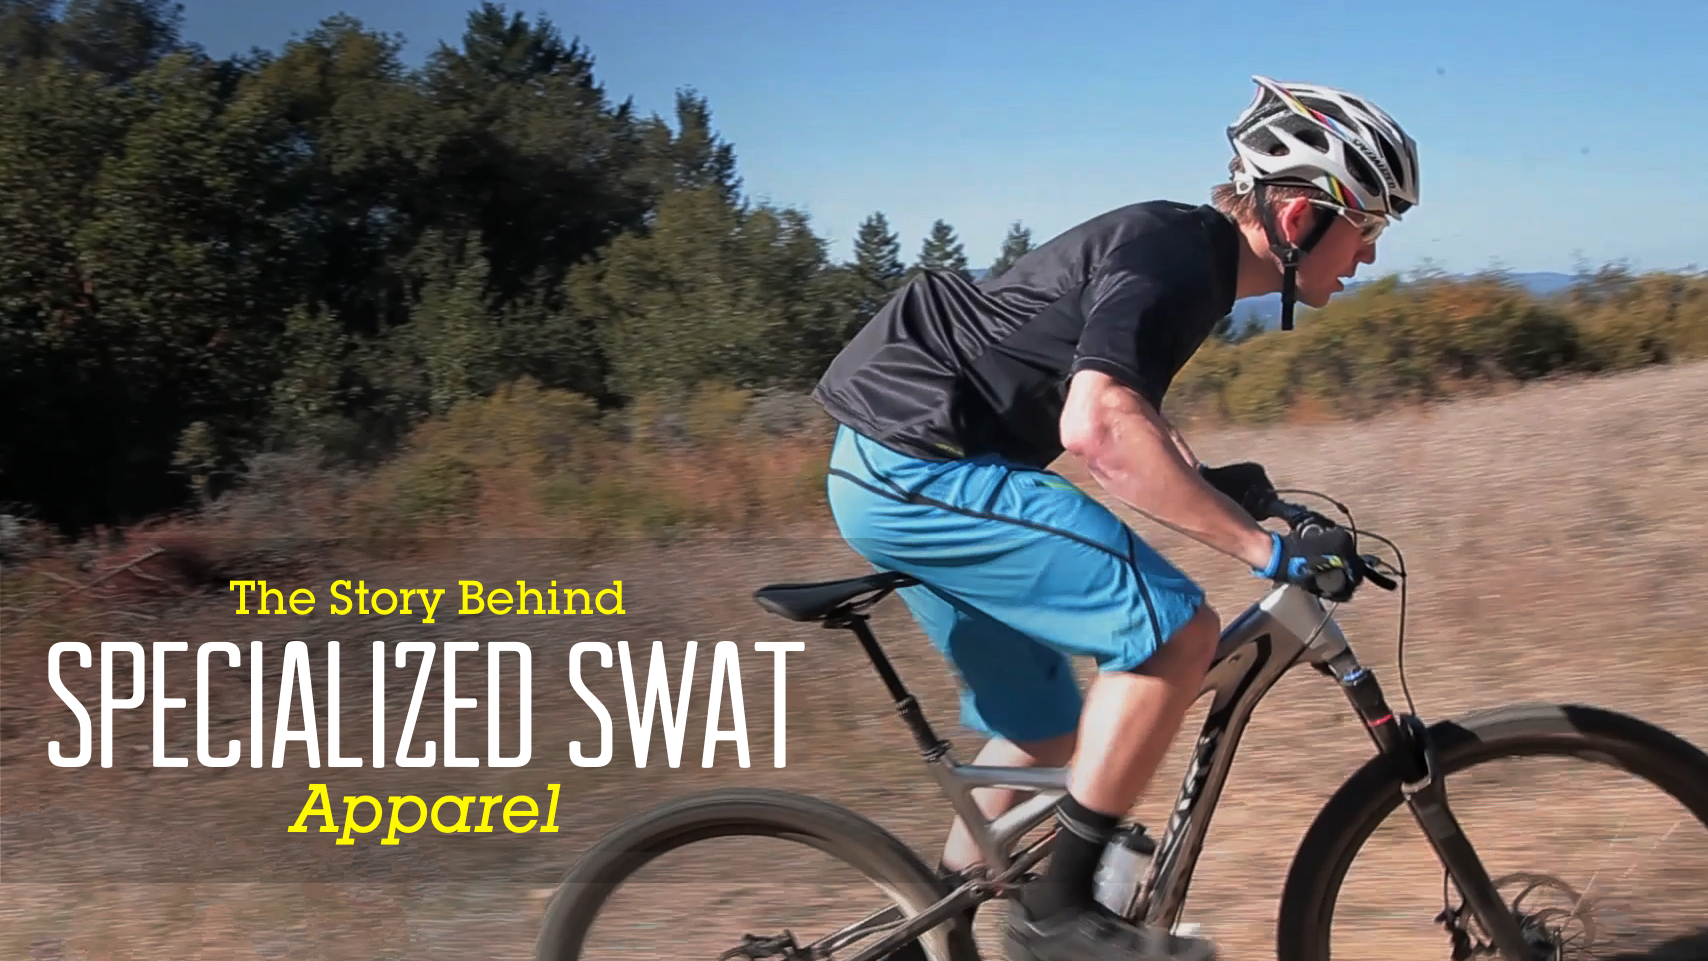 Forget the Pack - The Story Behind Specialized SWAT Apparel